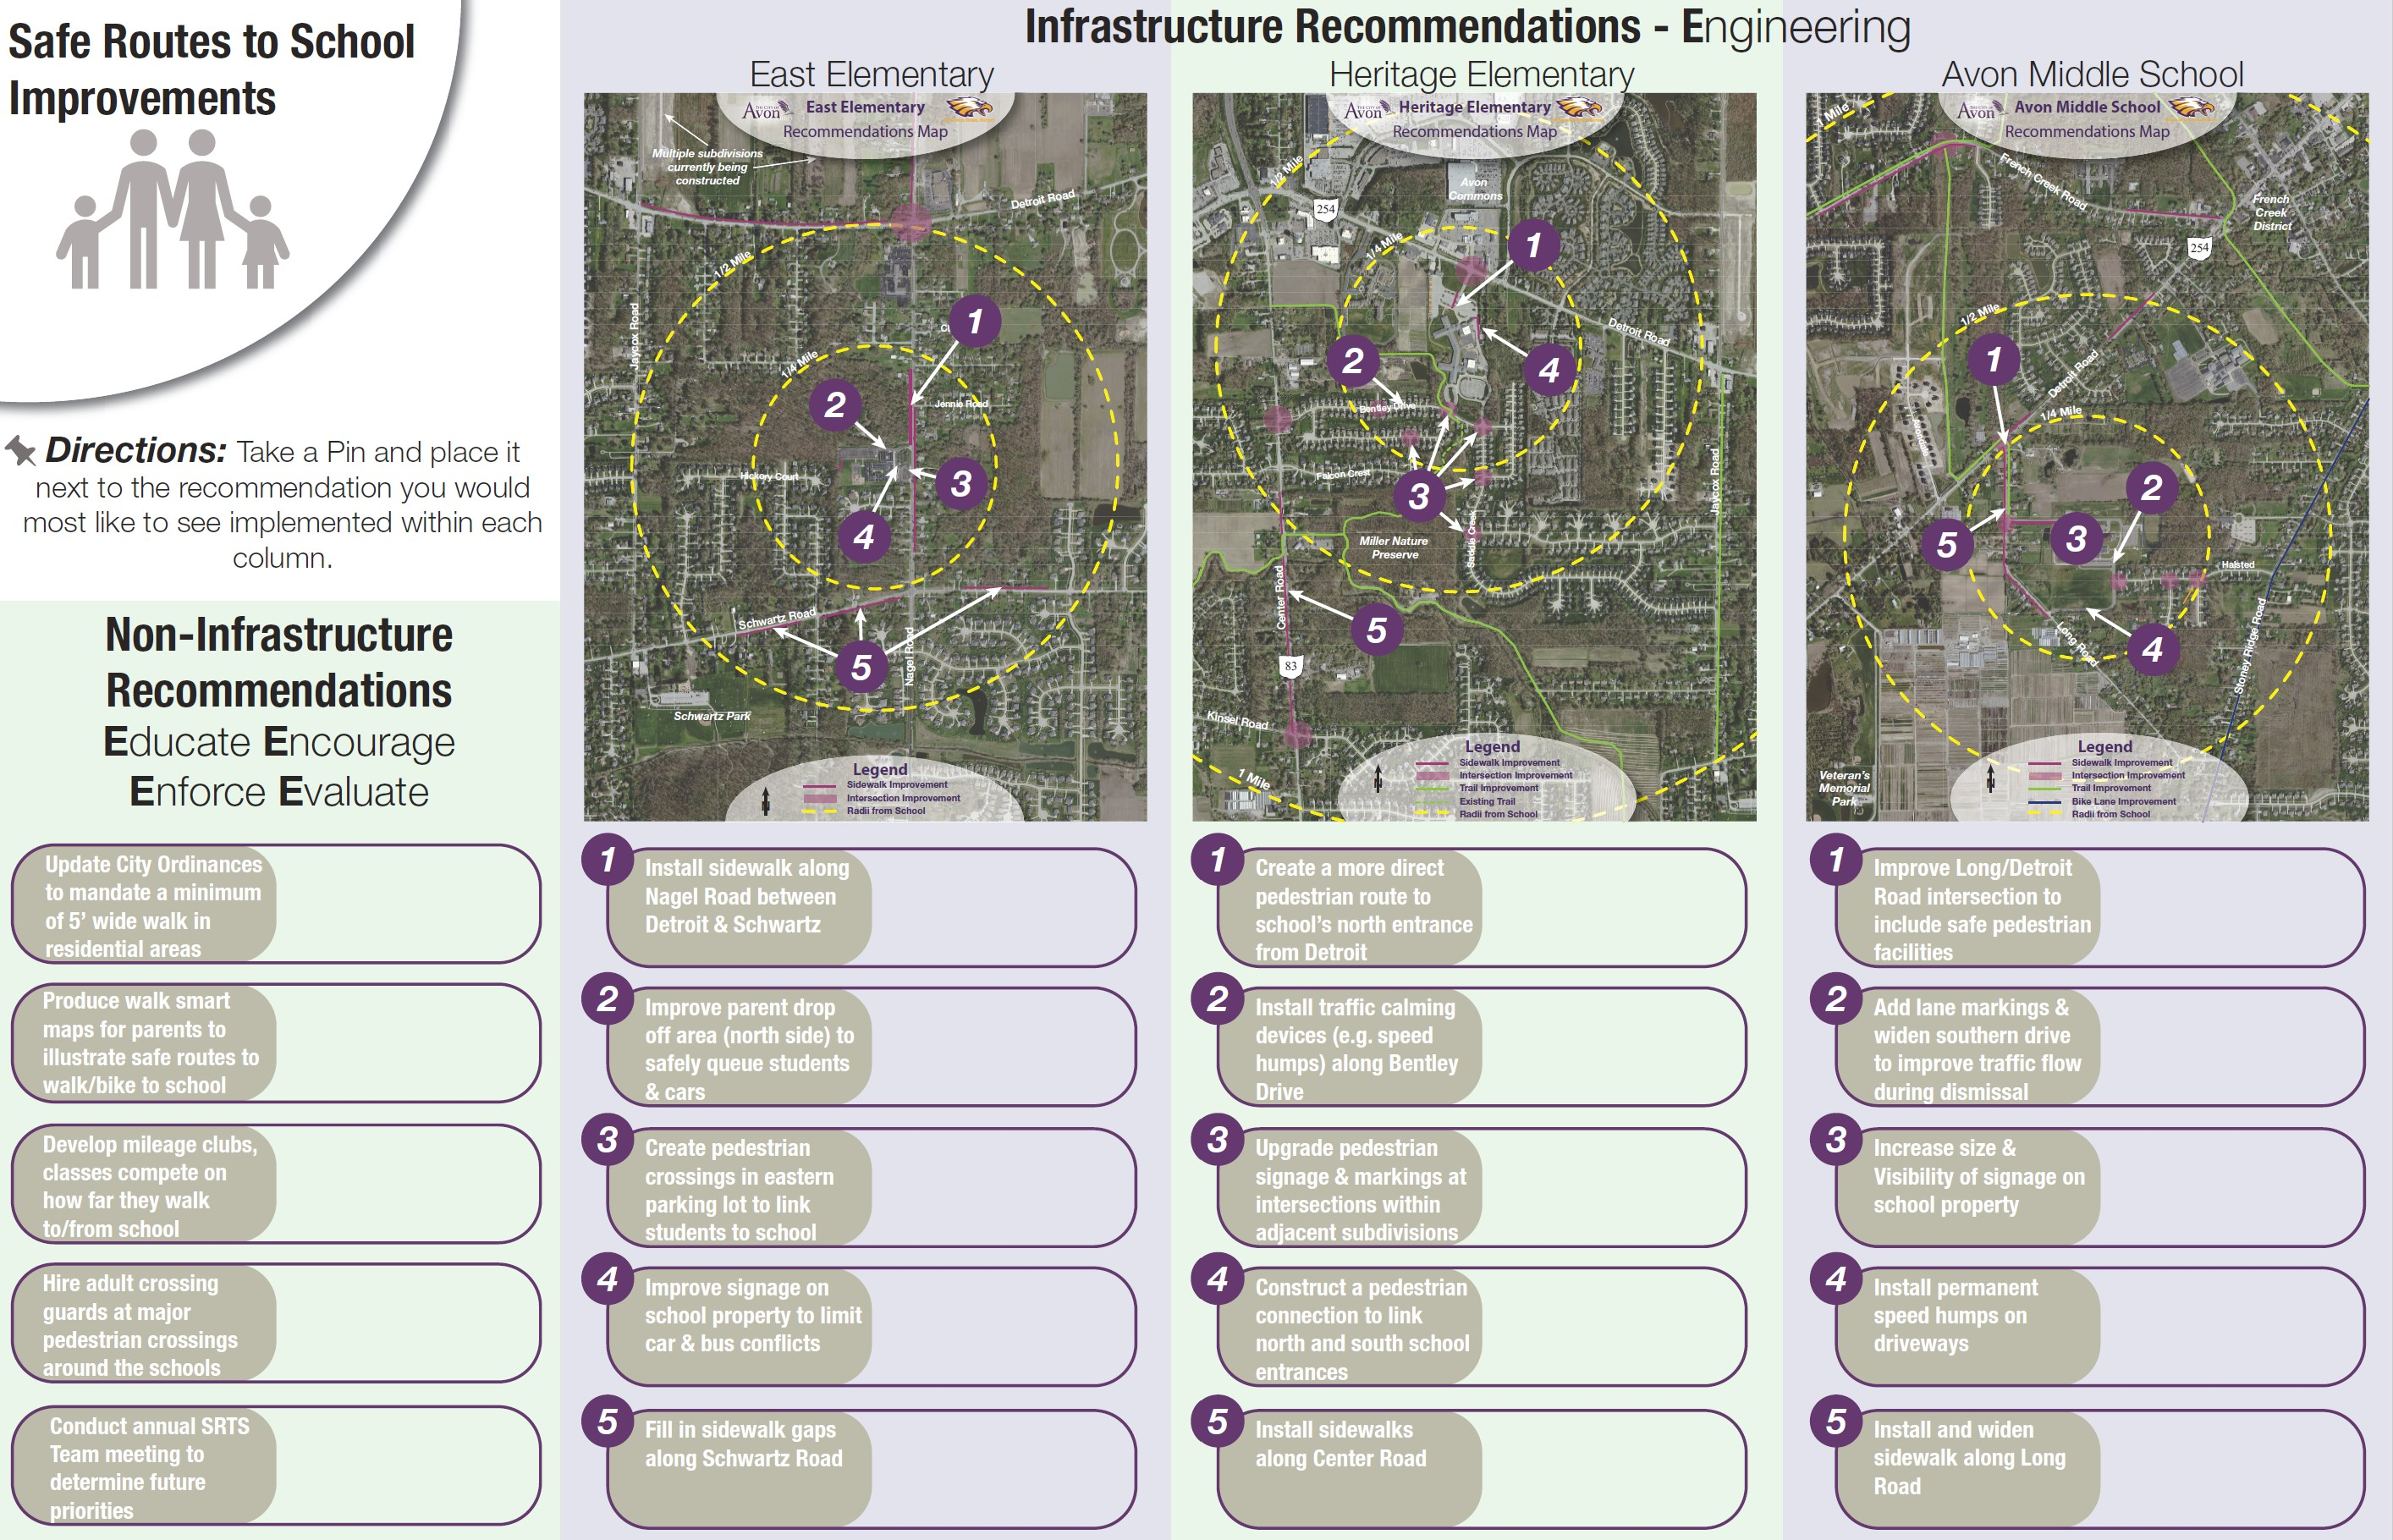 Safe Routes to School Improvements